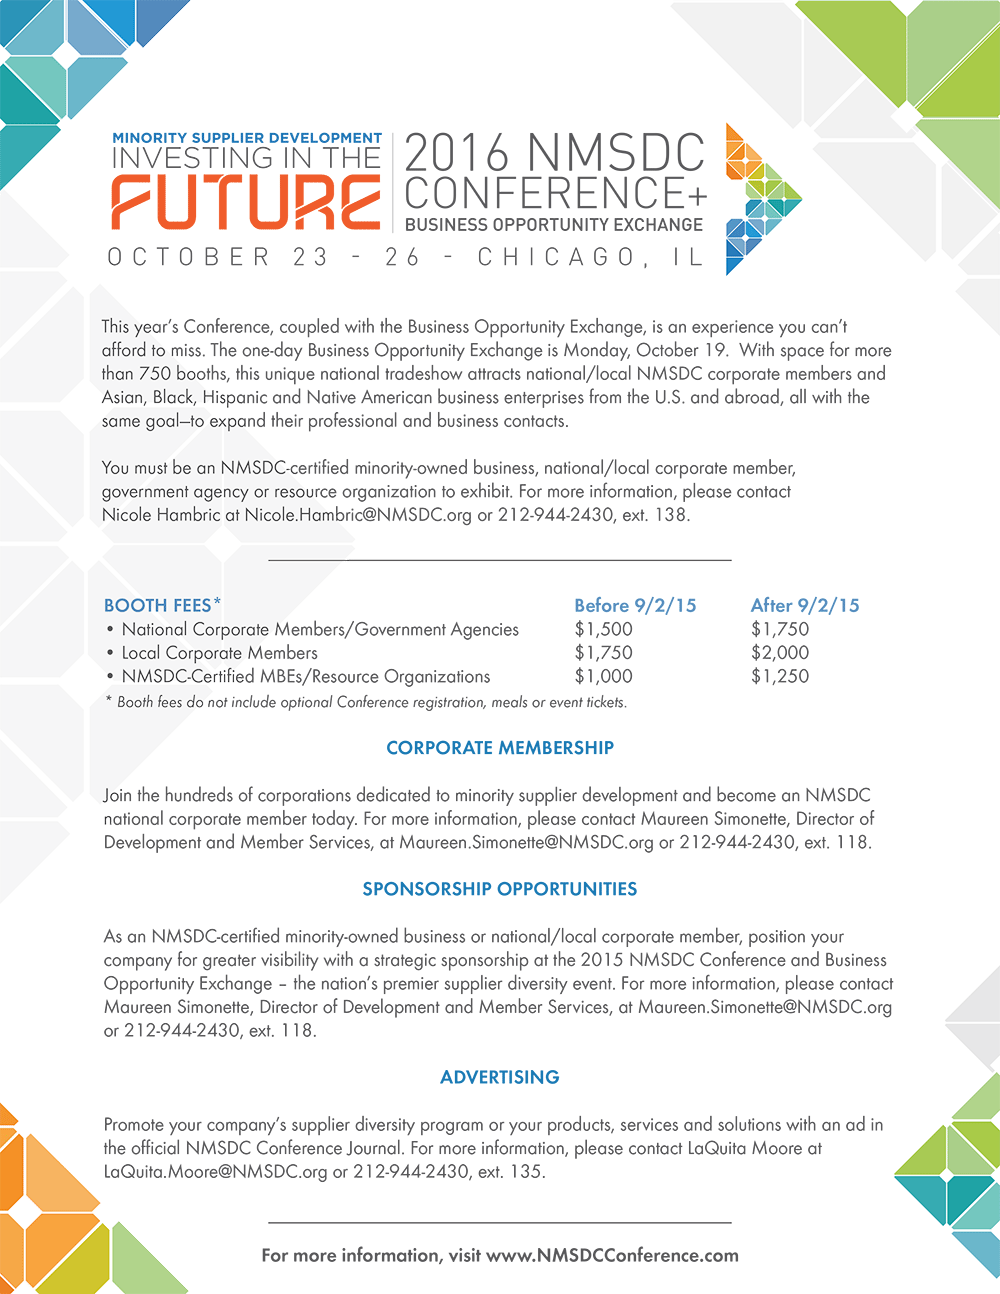 webNMSDC-2016_Conference_Branded_Flyer-2